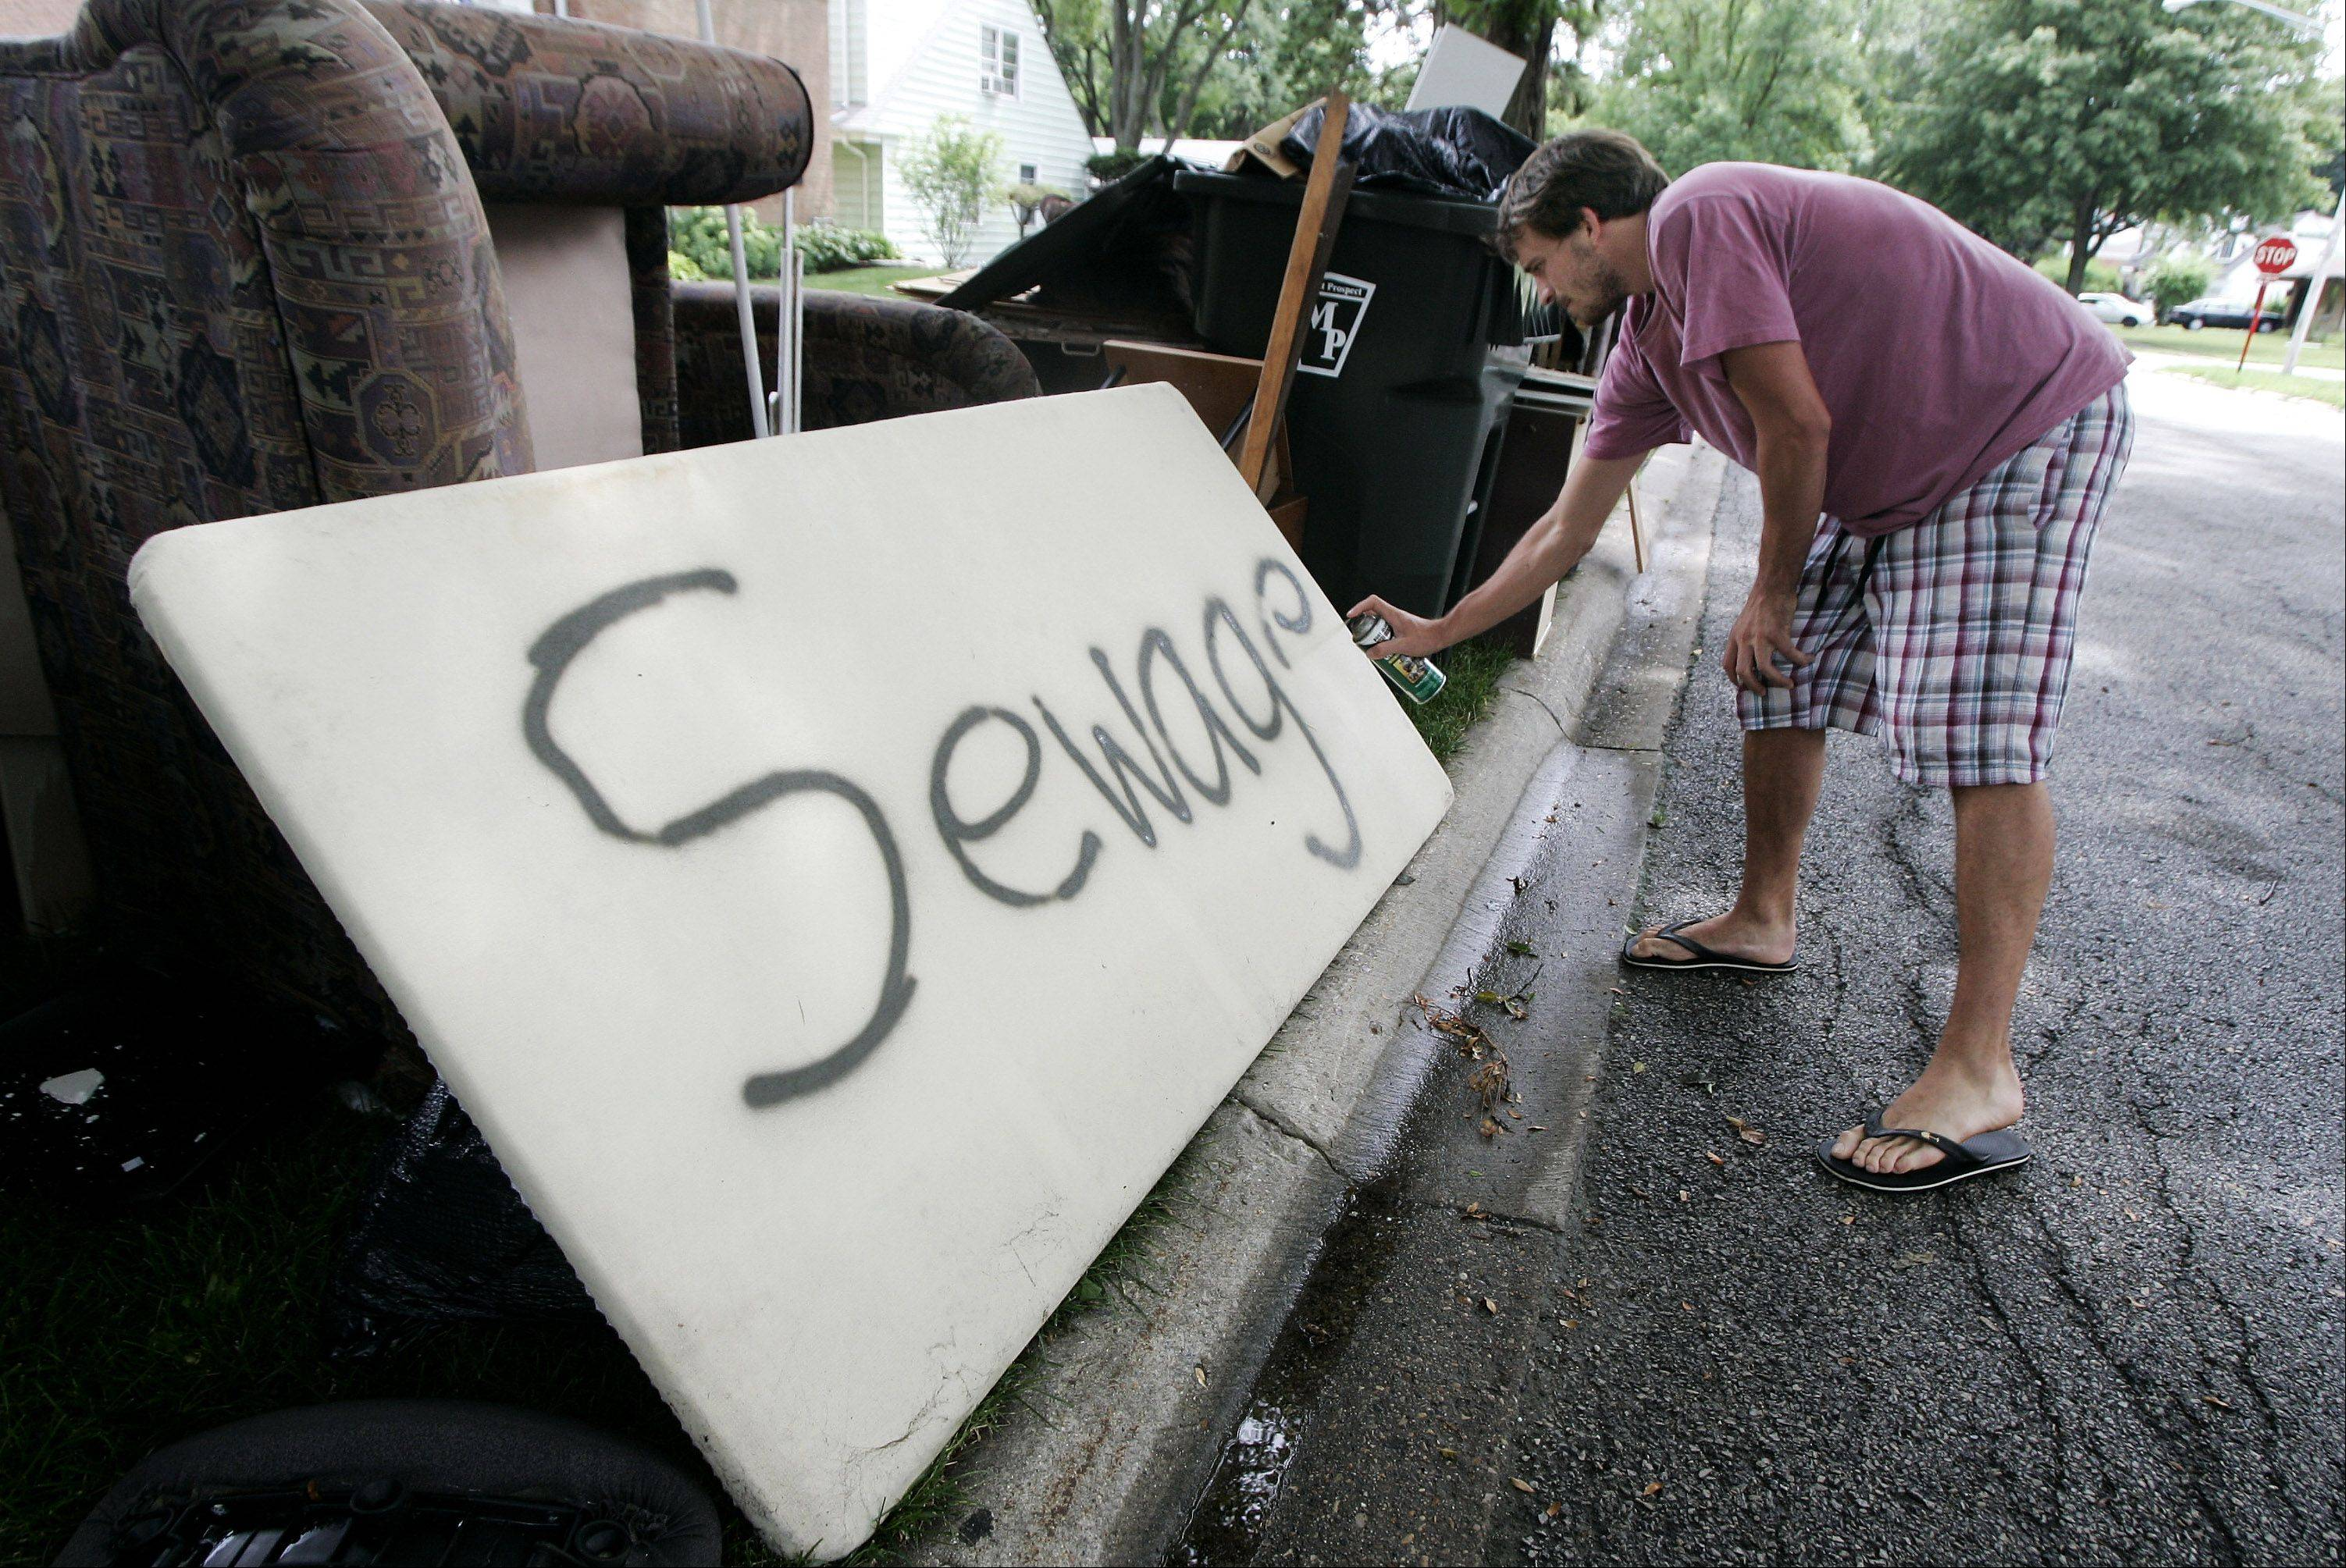 A Mount Prospect resident warns scavengers of sewage contaminated furniture left on the curb after flooding on Emerson Street in Mount Prospect in 2011. The village since has spent millions to address flooding in various neighborhoods.